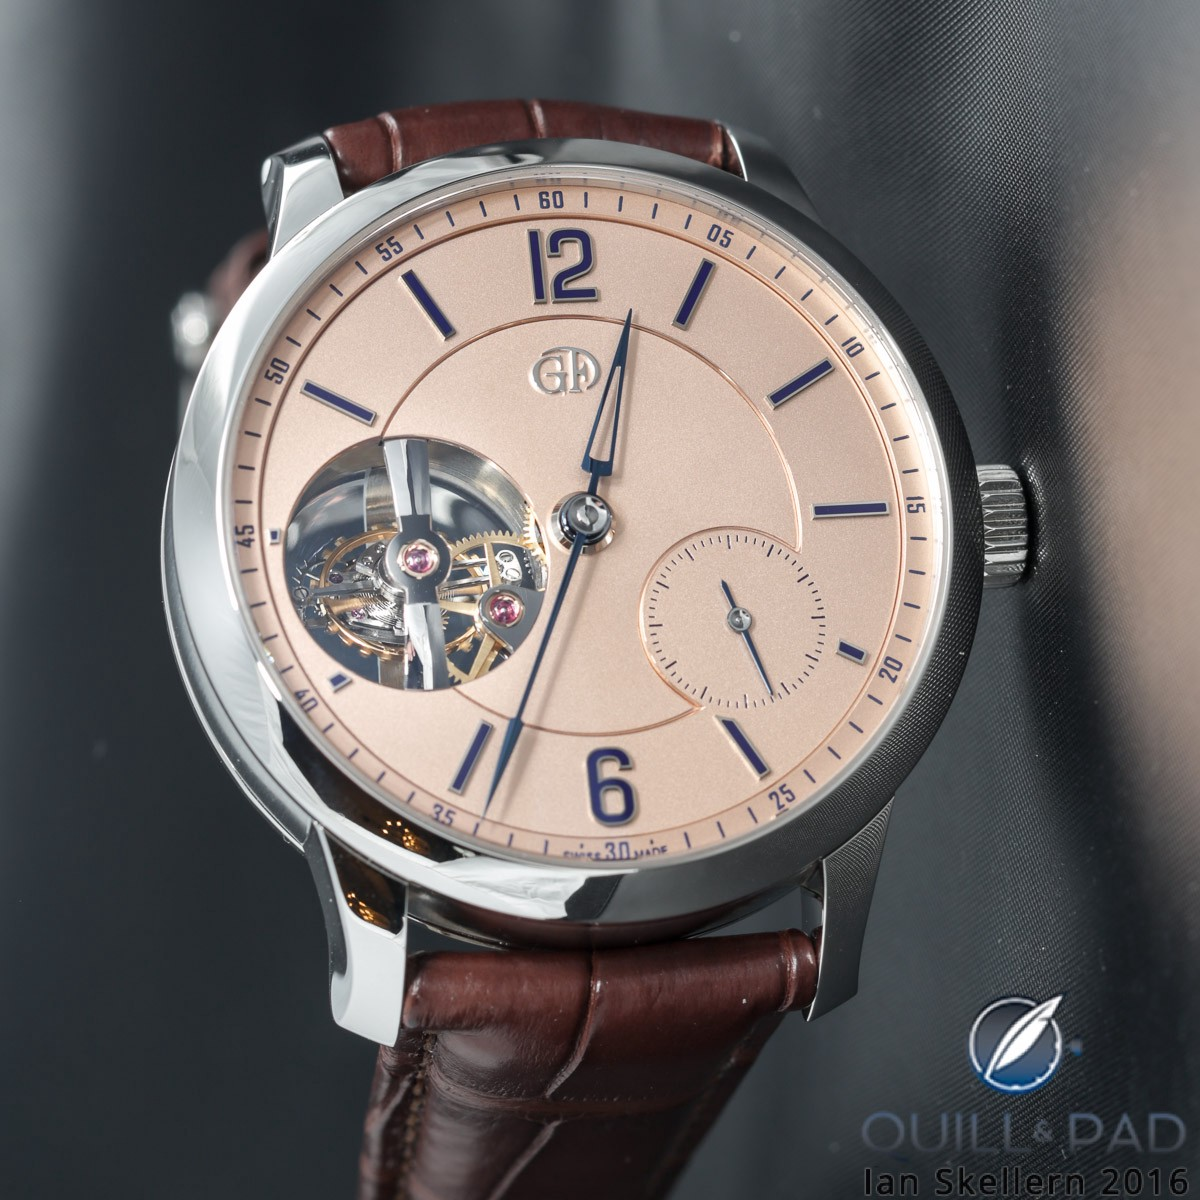 Greubel Forsey Tourbillon 24 Seconds Vision in platinum with salmon-colored dial